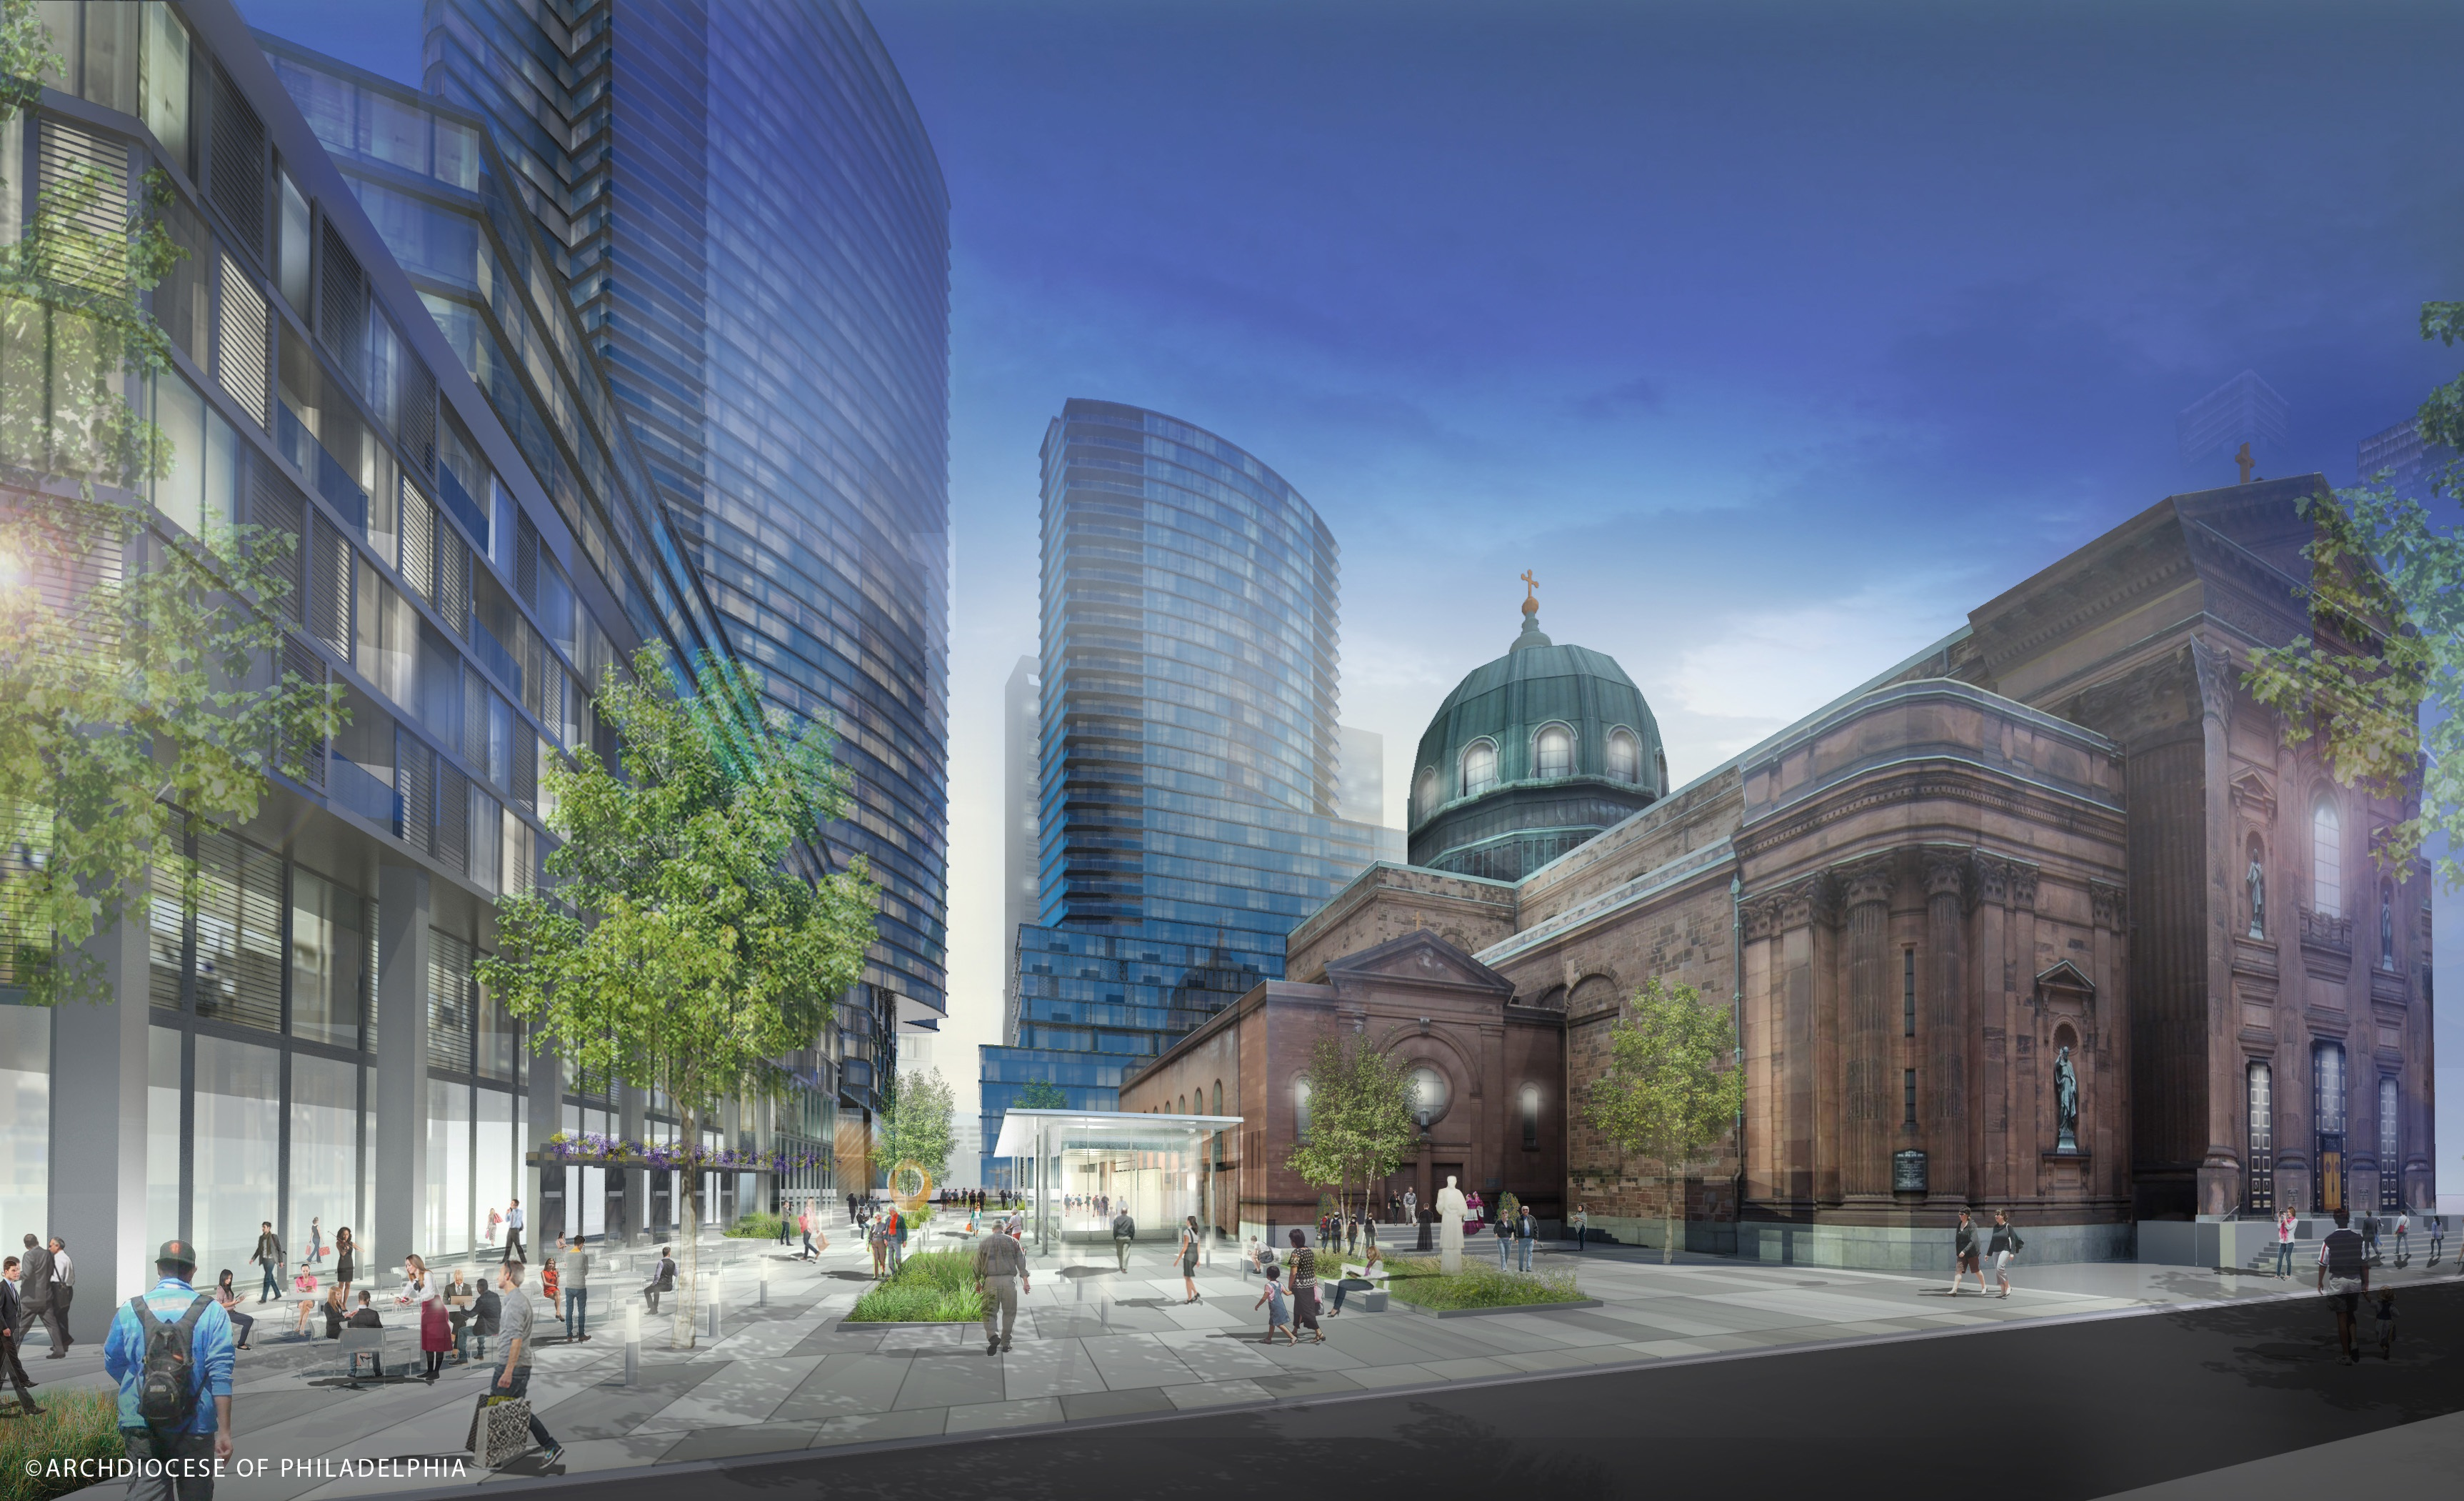 The Archdiocese of Philadelphia last year released this rendering, envisioning high-rise towers would take the place of some of its real estate holdings surrounding